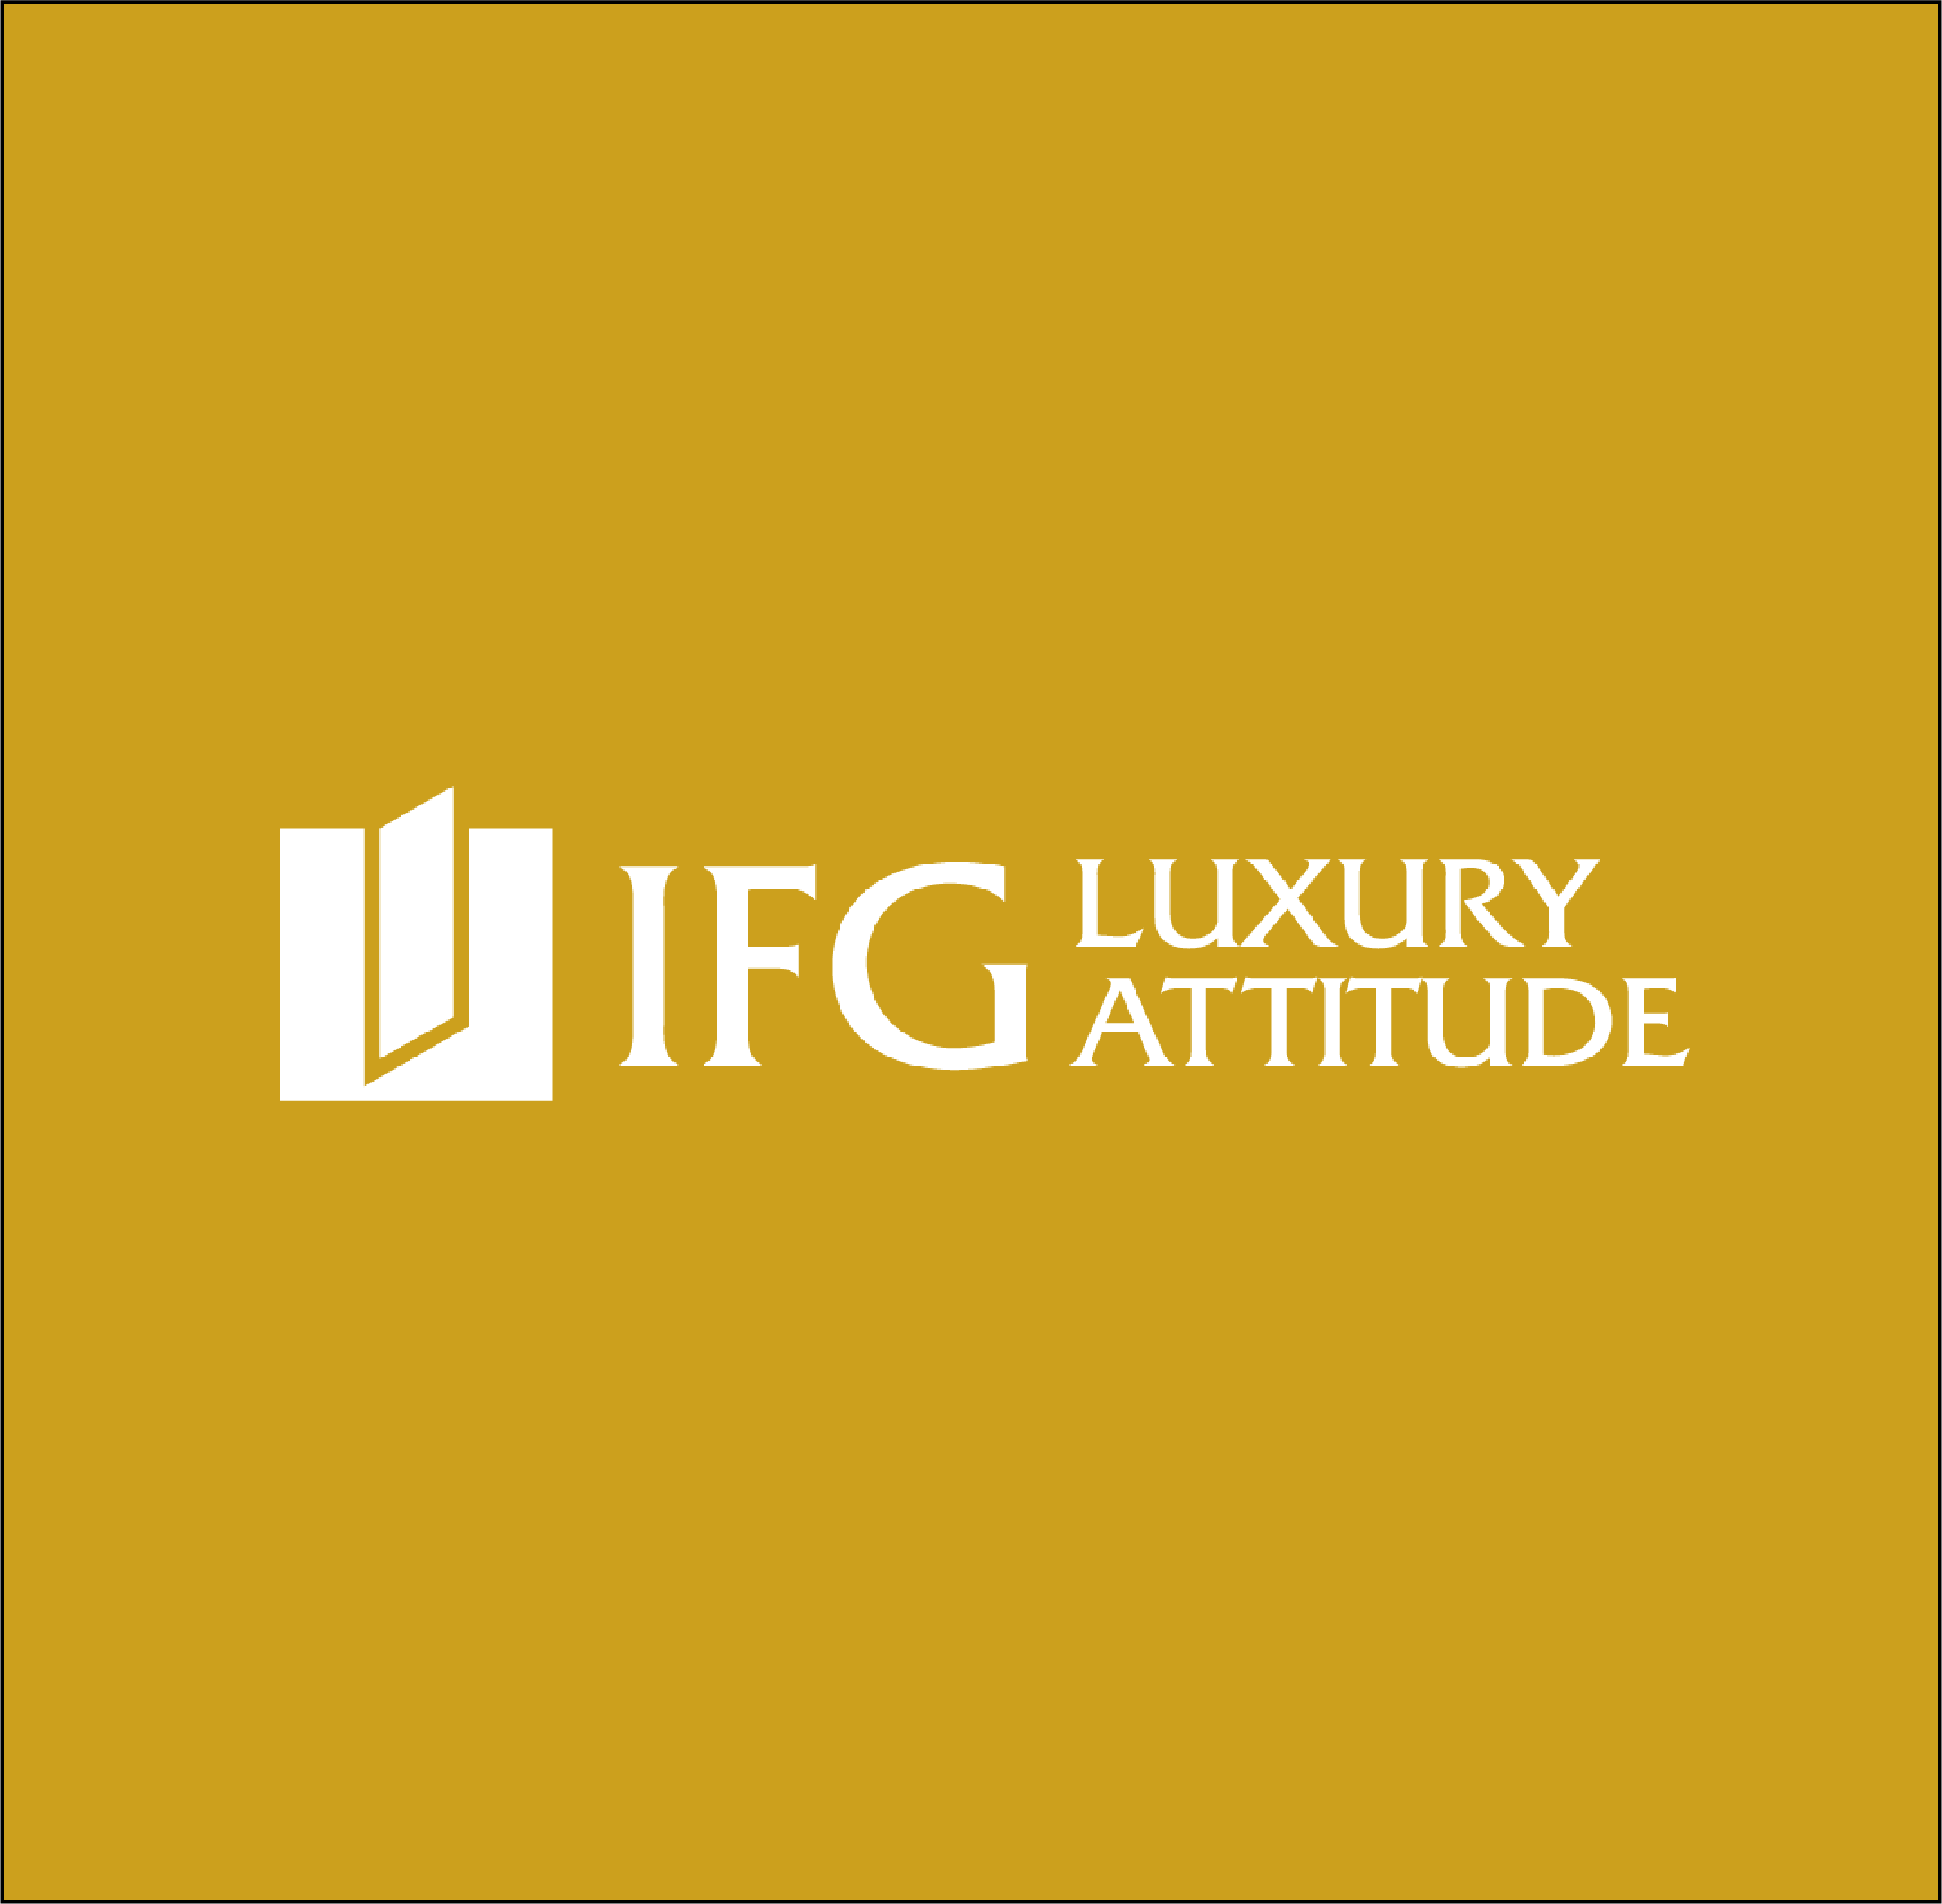 IFG LUXURY ATTITUDE